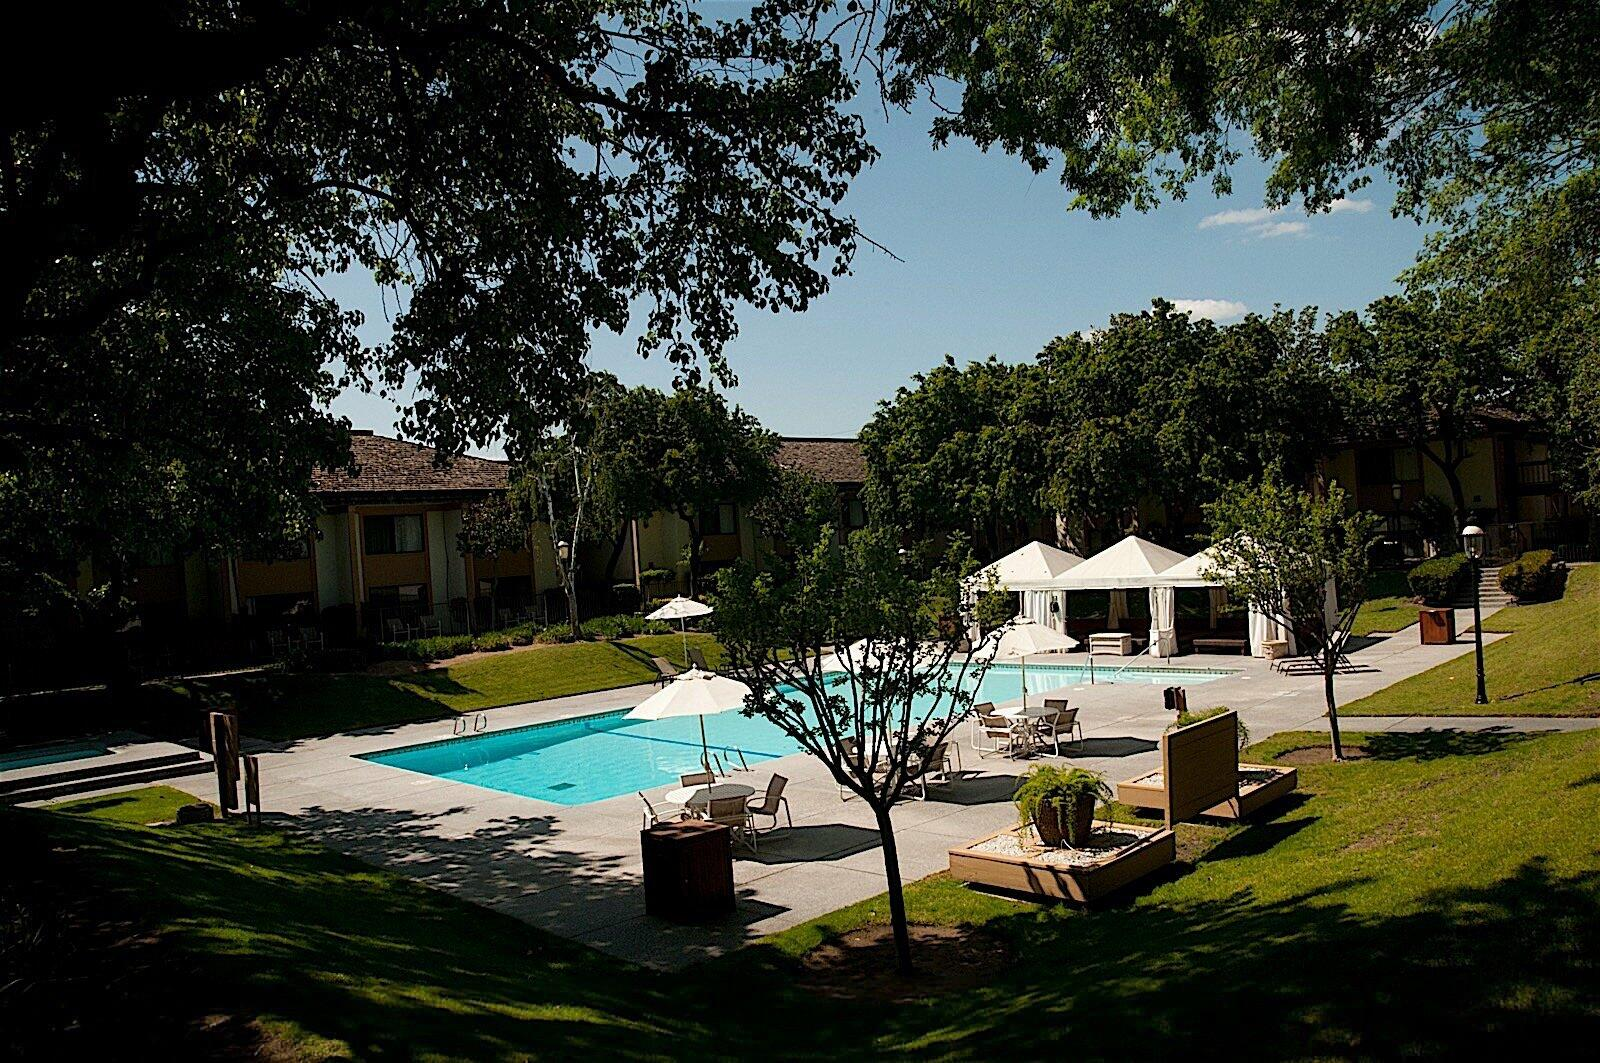 Wide angle view of outdoor pool with cabanas